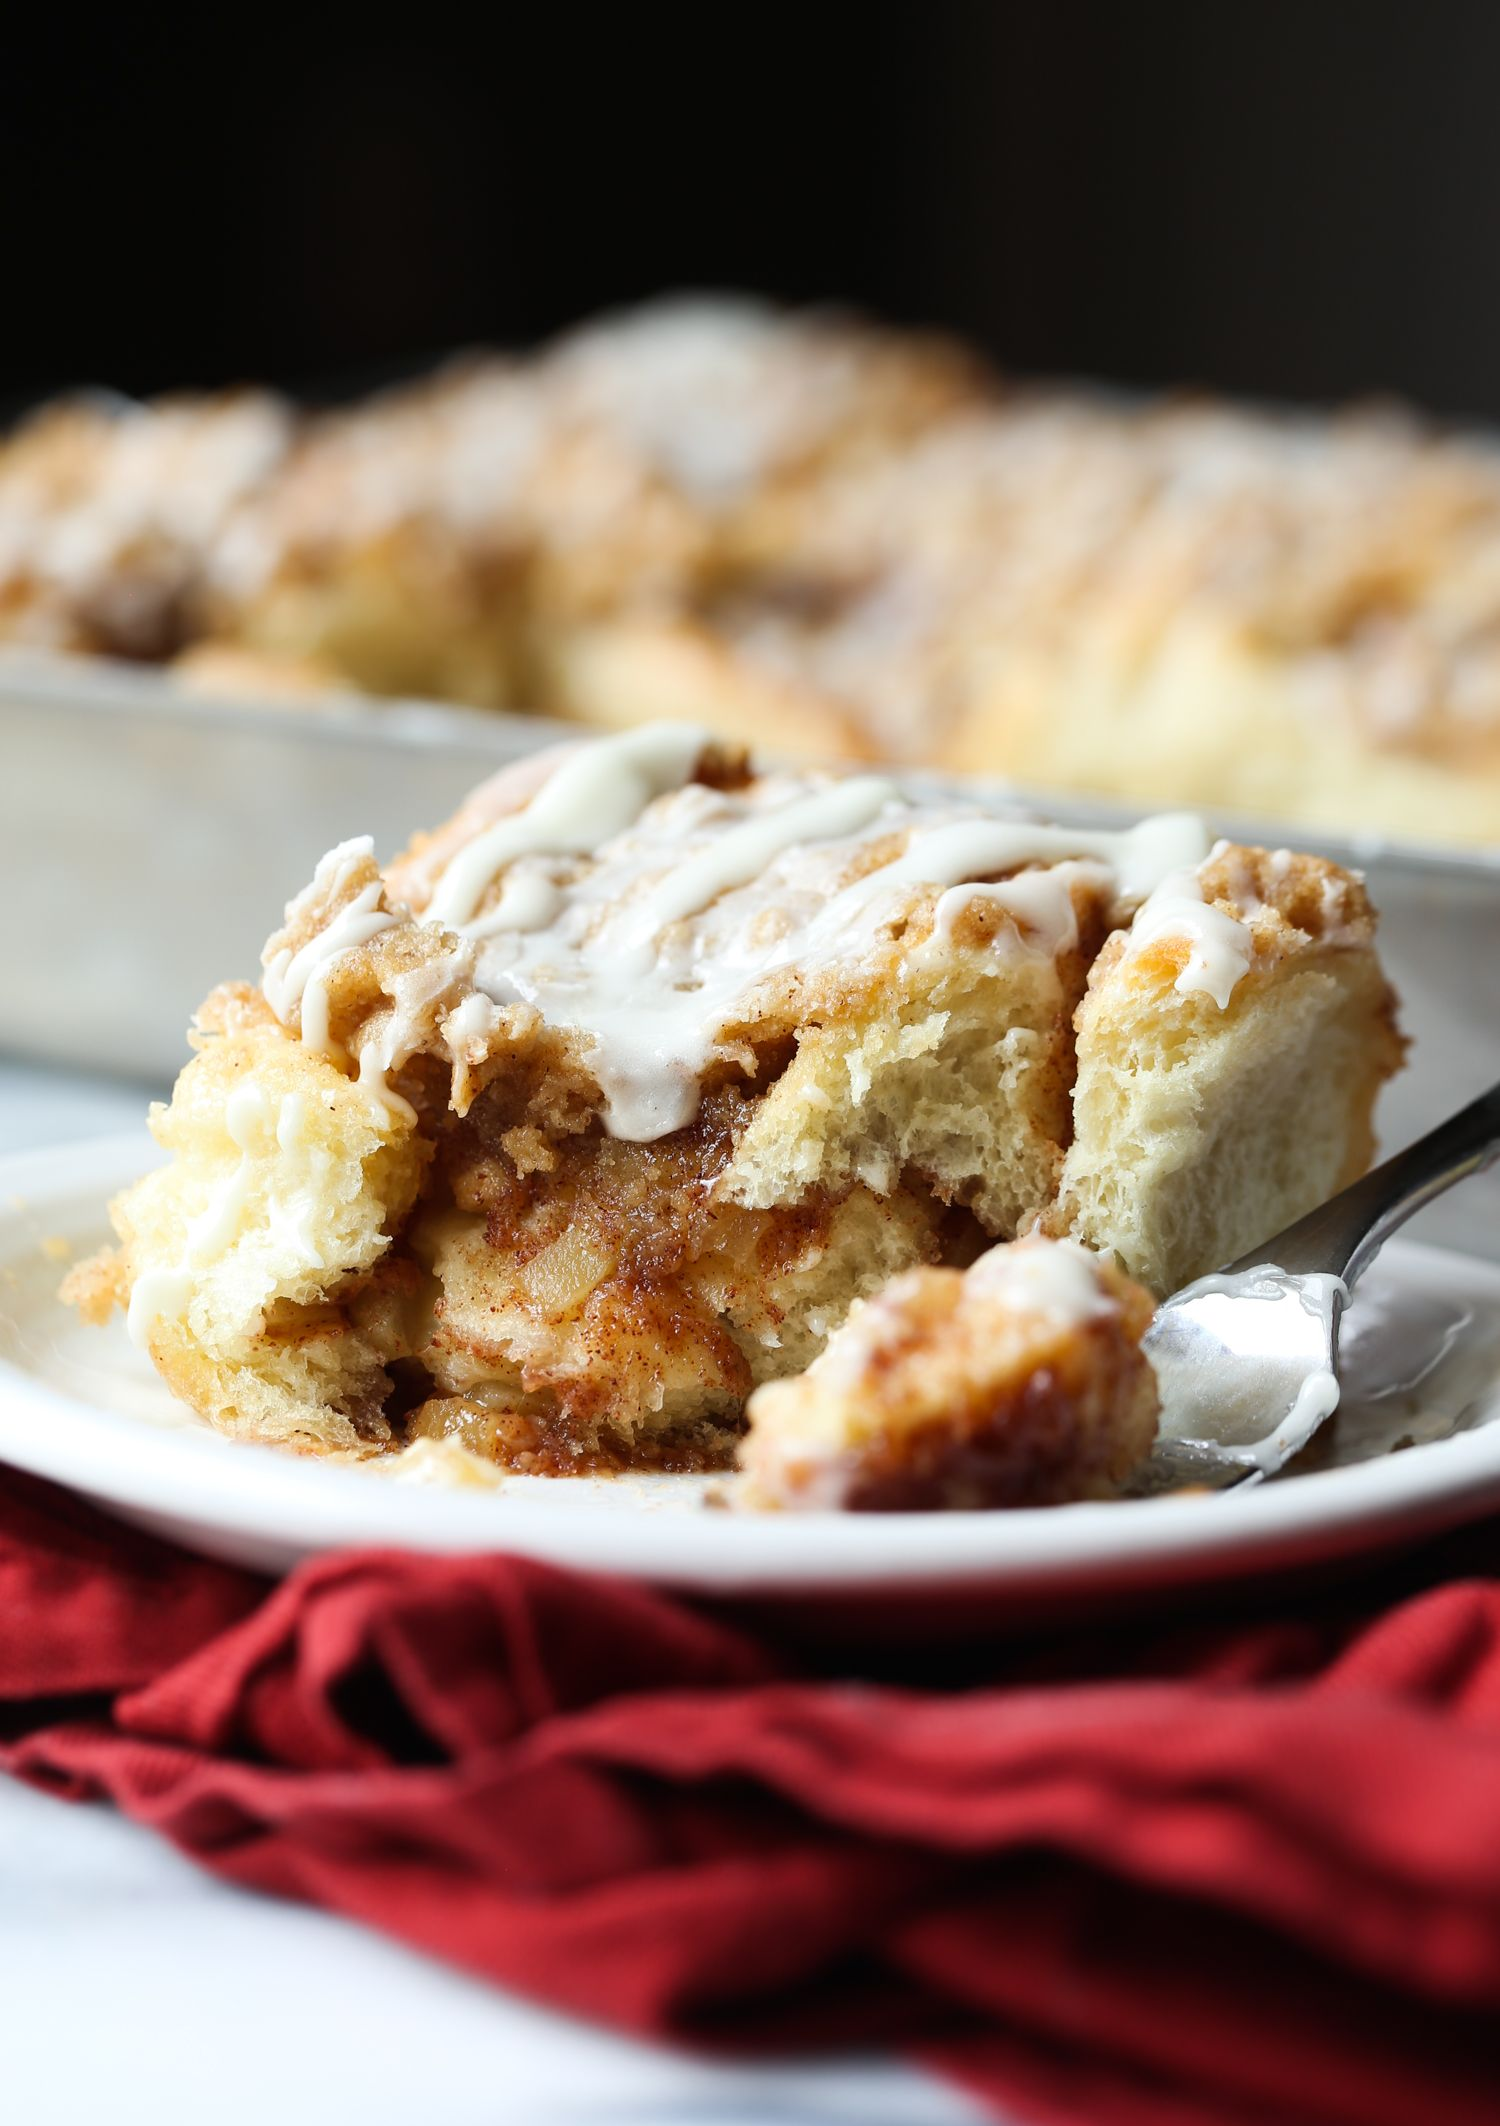 Sour Cream Apple Cake Is Soft Tender And Loaded With Apples And Cinnamon The Crumb Topping Gives The Cake A Breakfast Sweets Desserts Apple Dessert Recipes